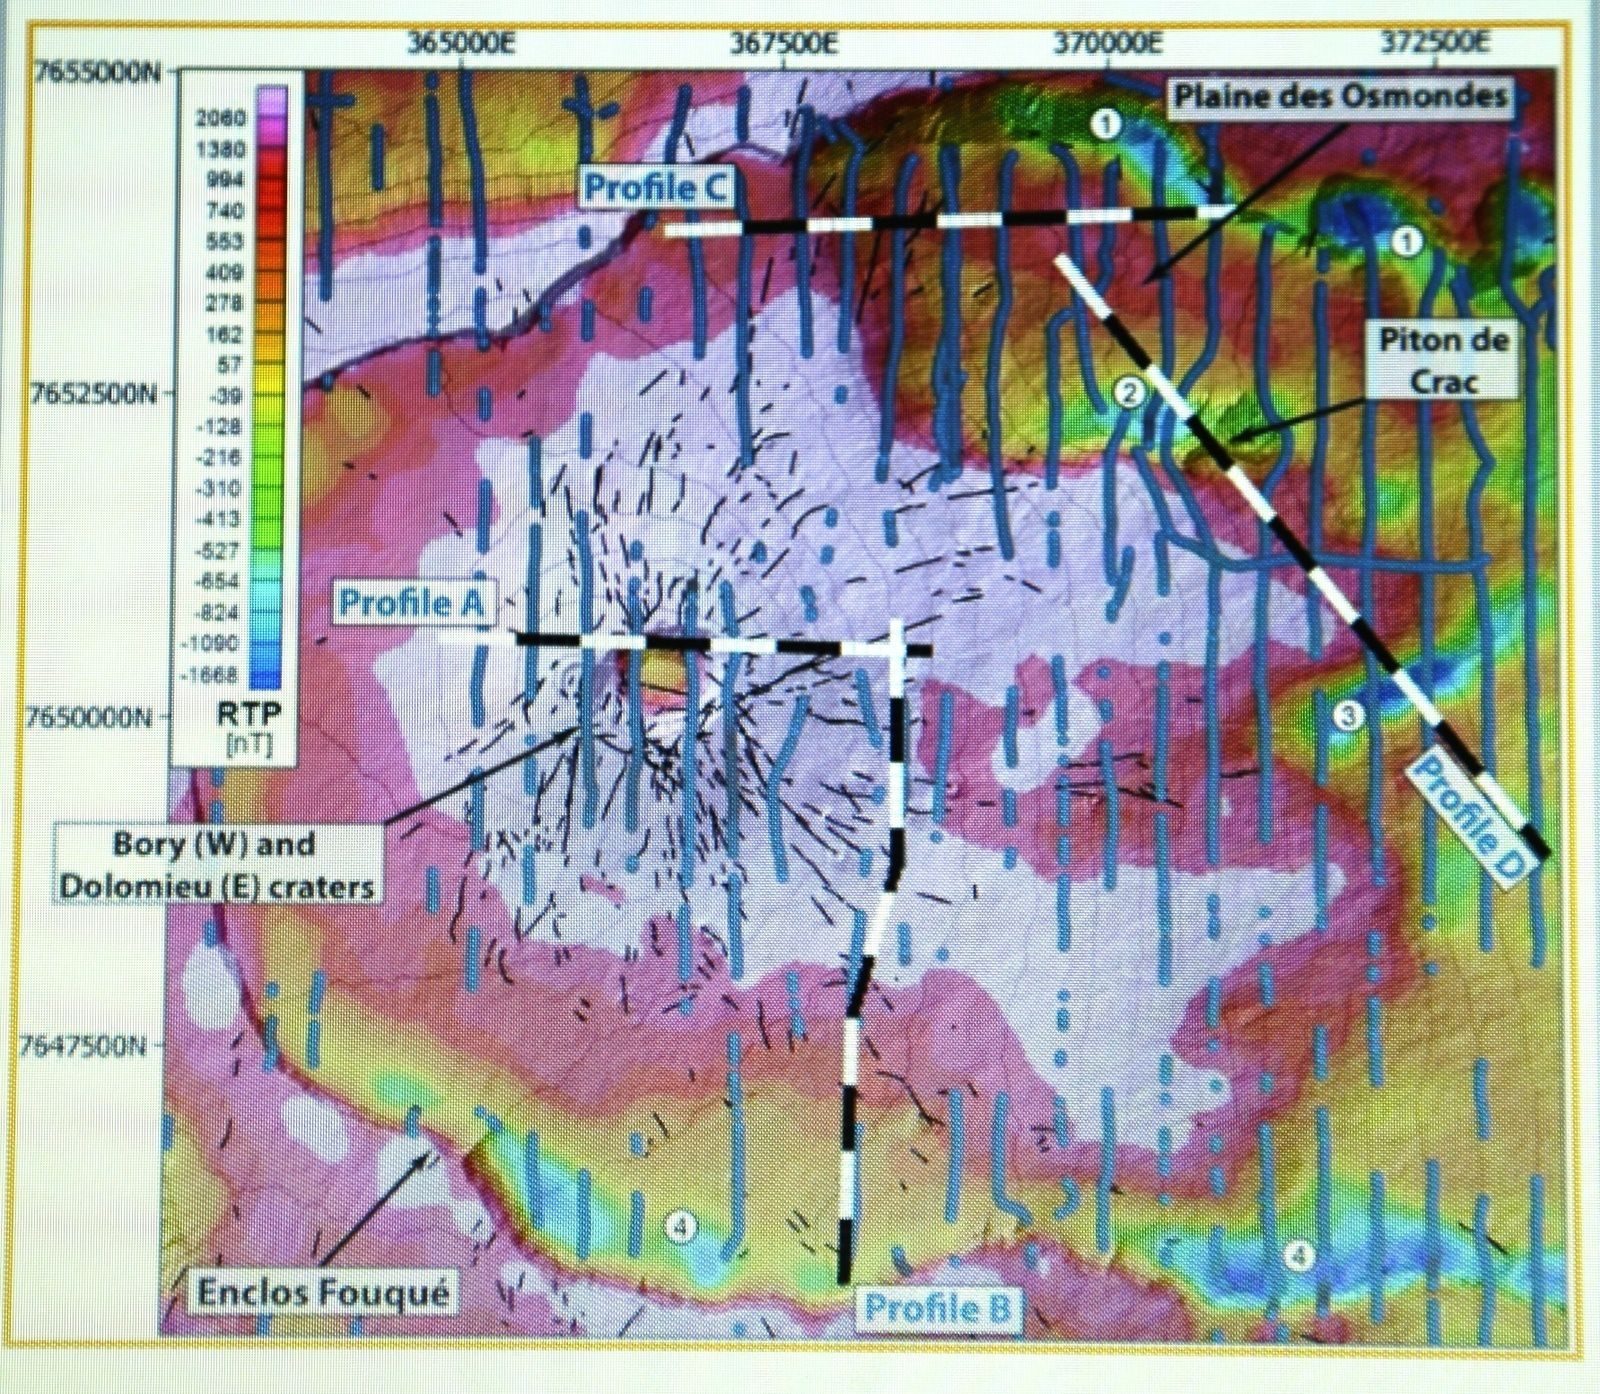 Location of the 3.655 inverted AEM soundings (blue dots) above the active part of the Piton de la Fournaise volcano (i.e. the Enclos Fouqué caldera), displayed on the magnetic anomaly map (reduced to the pole to lined-up anomalies with magnetic sources). The eruptive fissures visible in the field are denoted in black. The number refers to the negative magnetic anomalies discussed in the text. The 2D profiles (A–D) are marked with white/black lines (the color of the line changes each 500 m). The map has been created using open source QGIS 3.8.3. Coordinates in meters (WGS84, UTM 40S).  - image extracted from doc. referenced in source